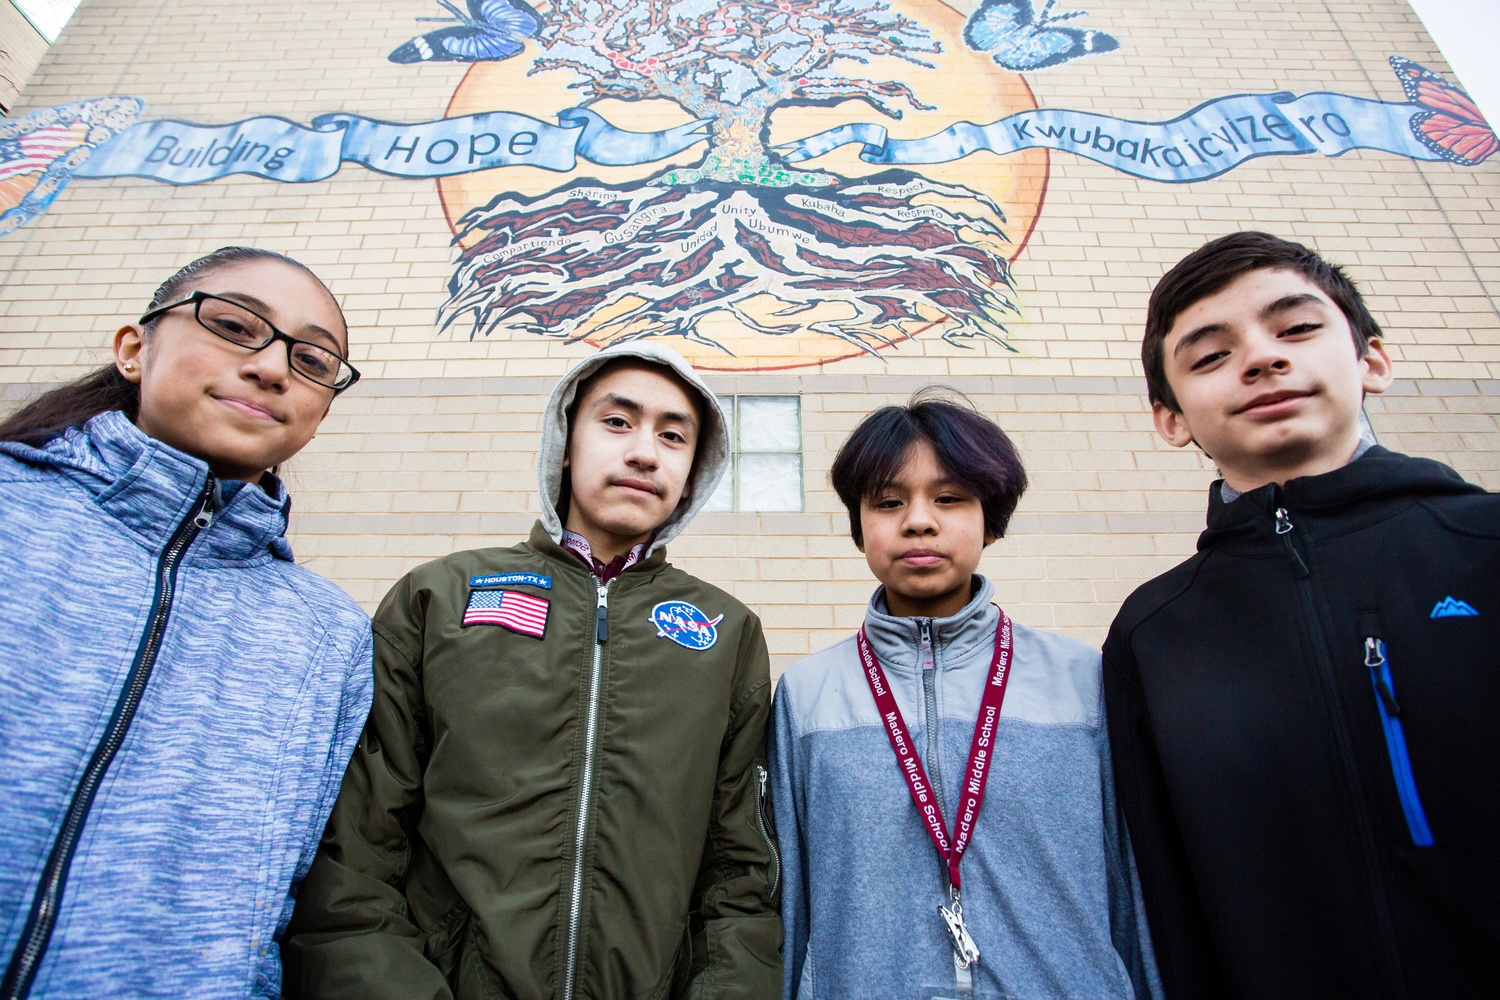 Eighth-graders Sever Menez (from left), Andrew Vargas, Cristal Palmeros and Jonatan Barahona and the new mural at Madero Middle School they helped create in collaboration with students in Rwanda,